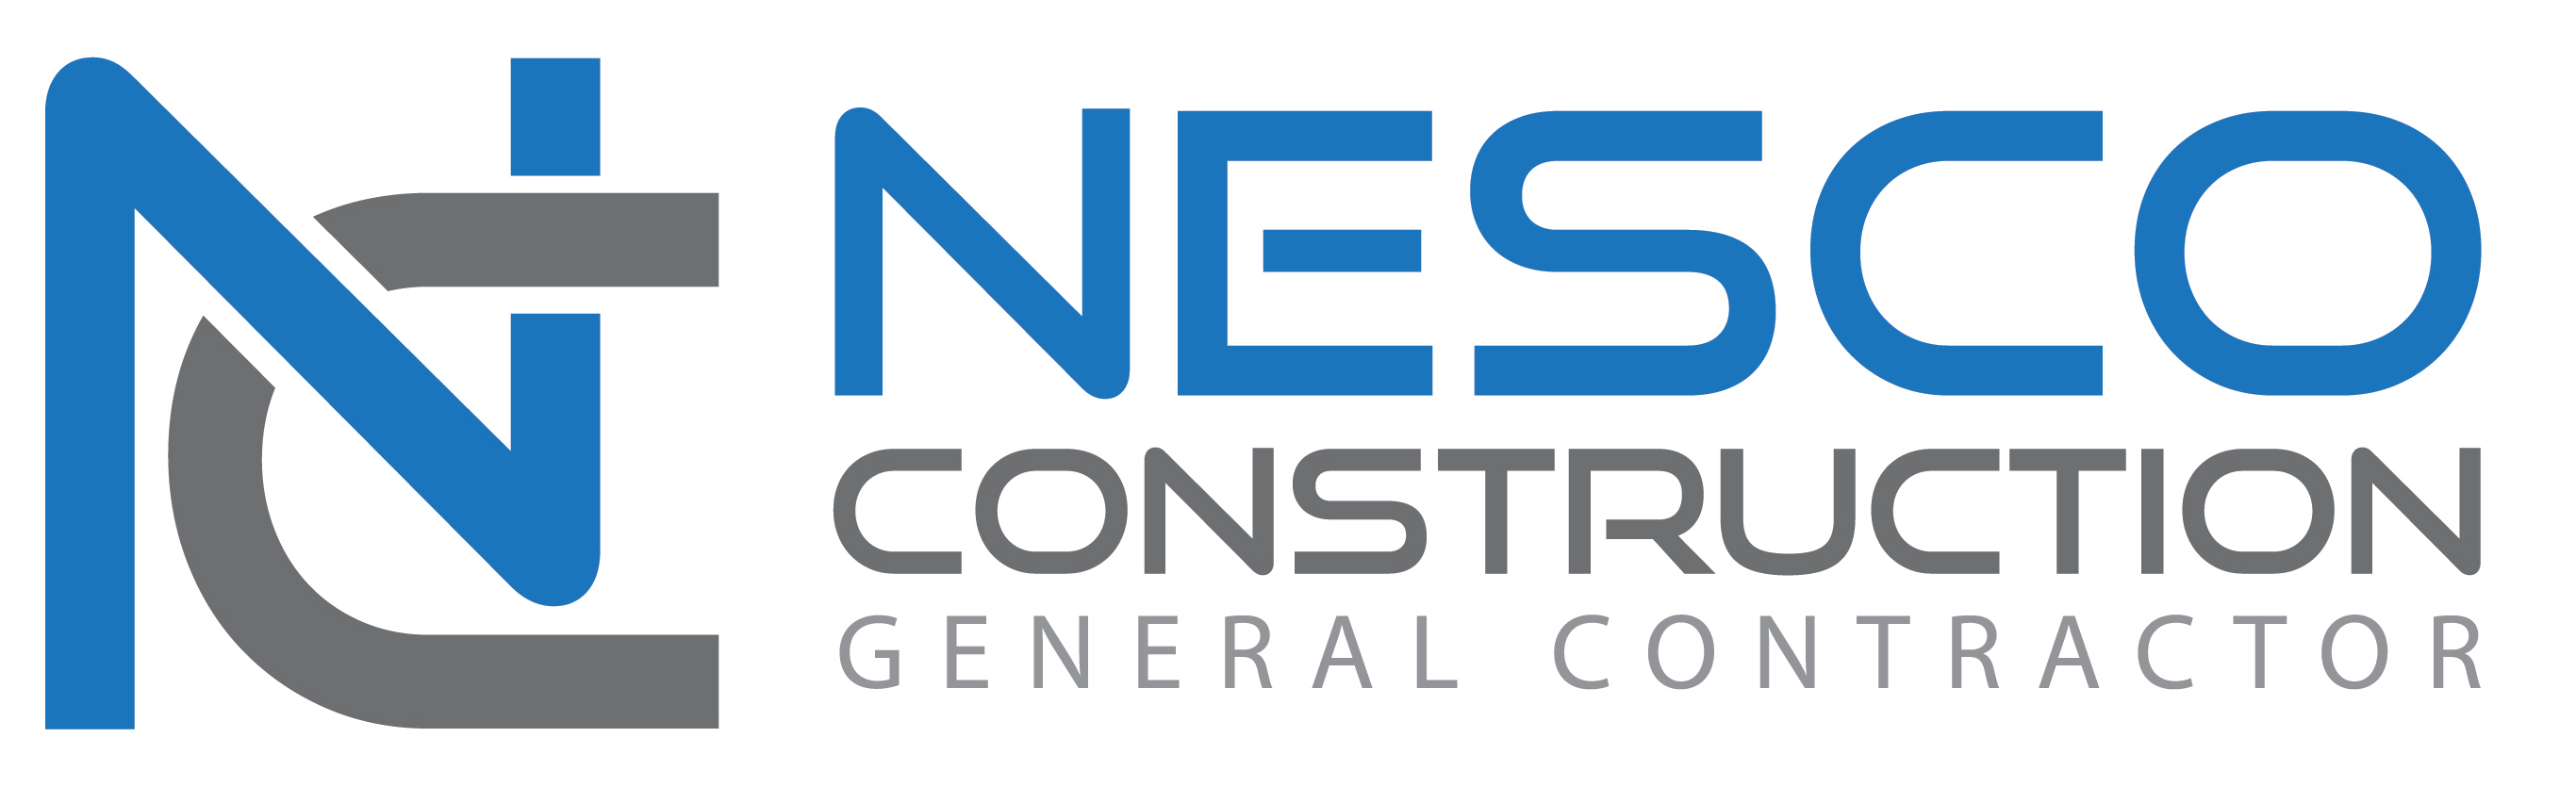 General Contractor Las Vegas Amp Henderson Nesco Construction